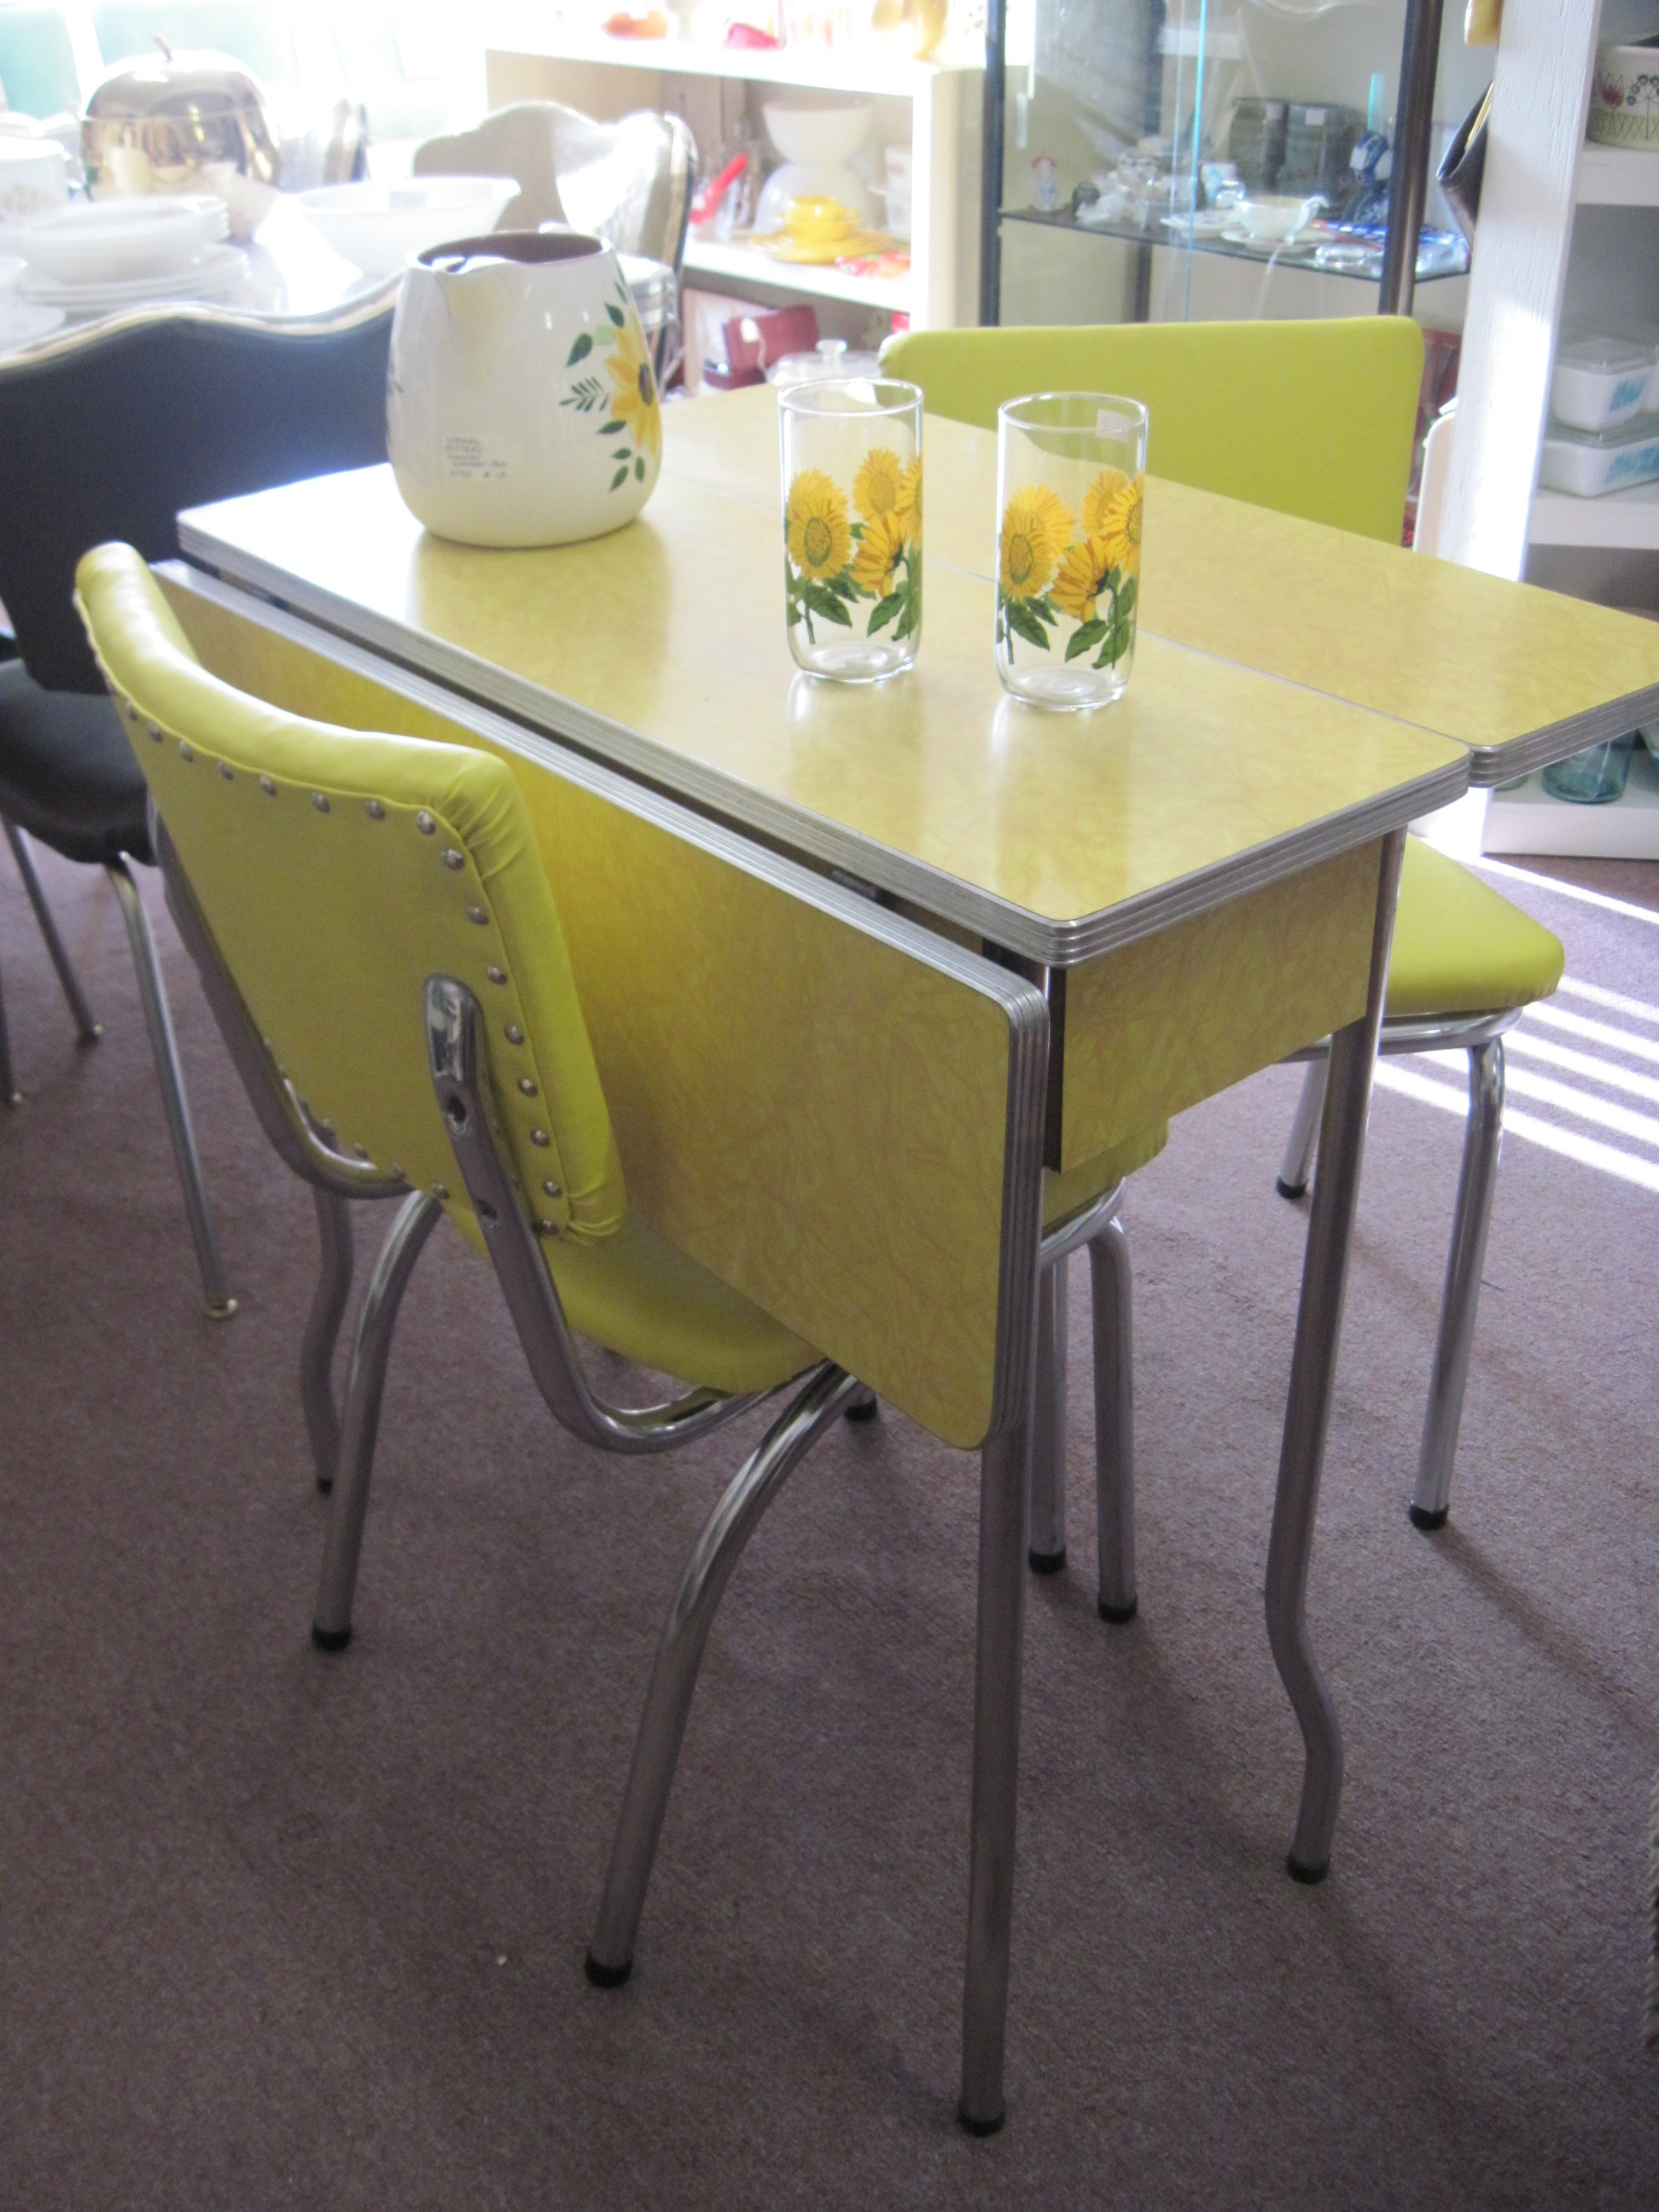 1950s Kitchen Furniture Retro Kitchen Chairs Toronto Full Size Of Room Kitchen Furniture